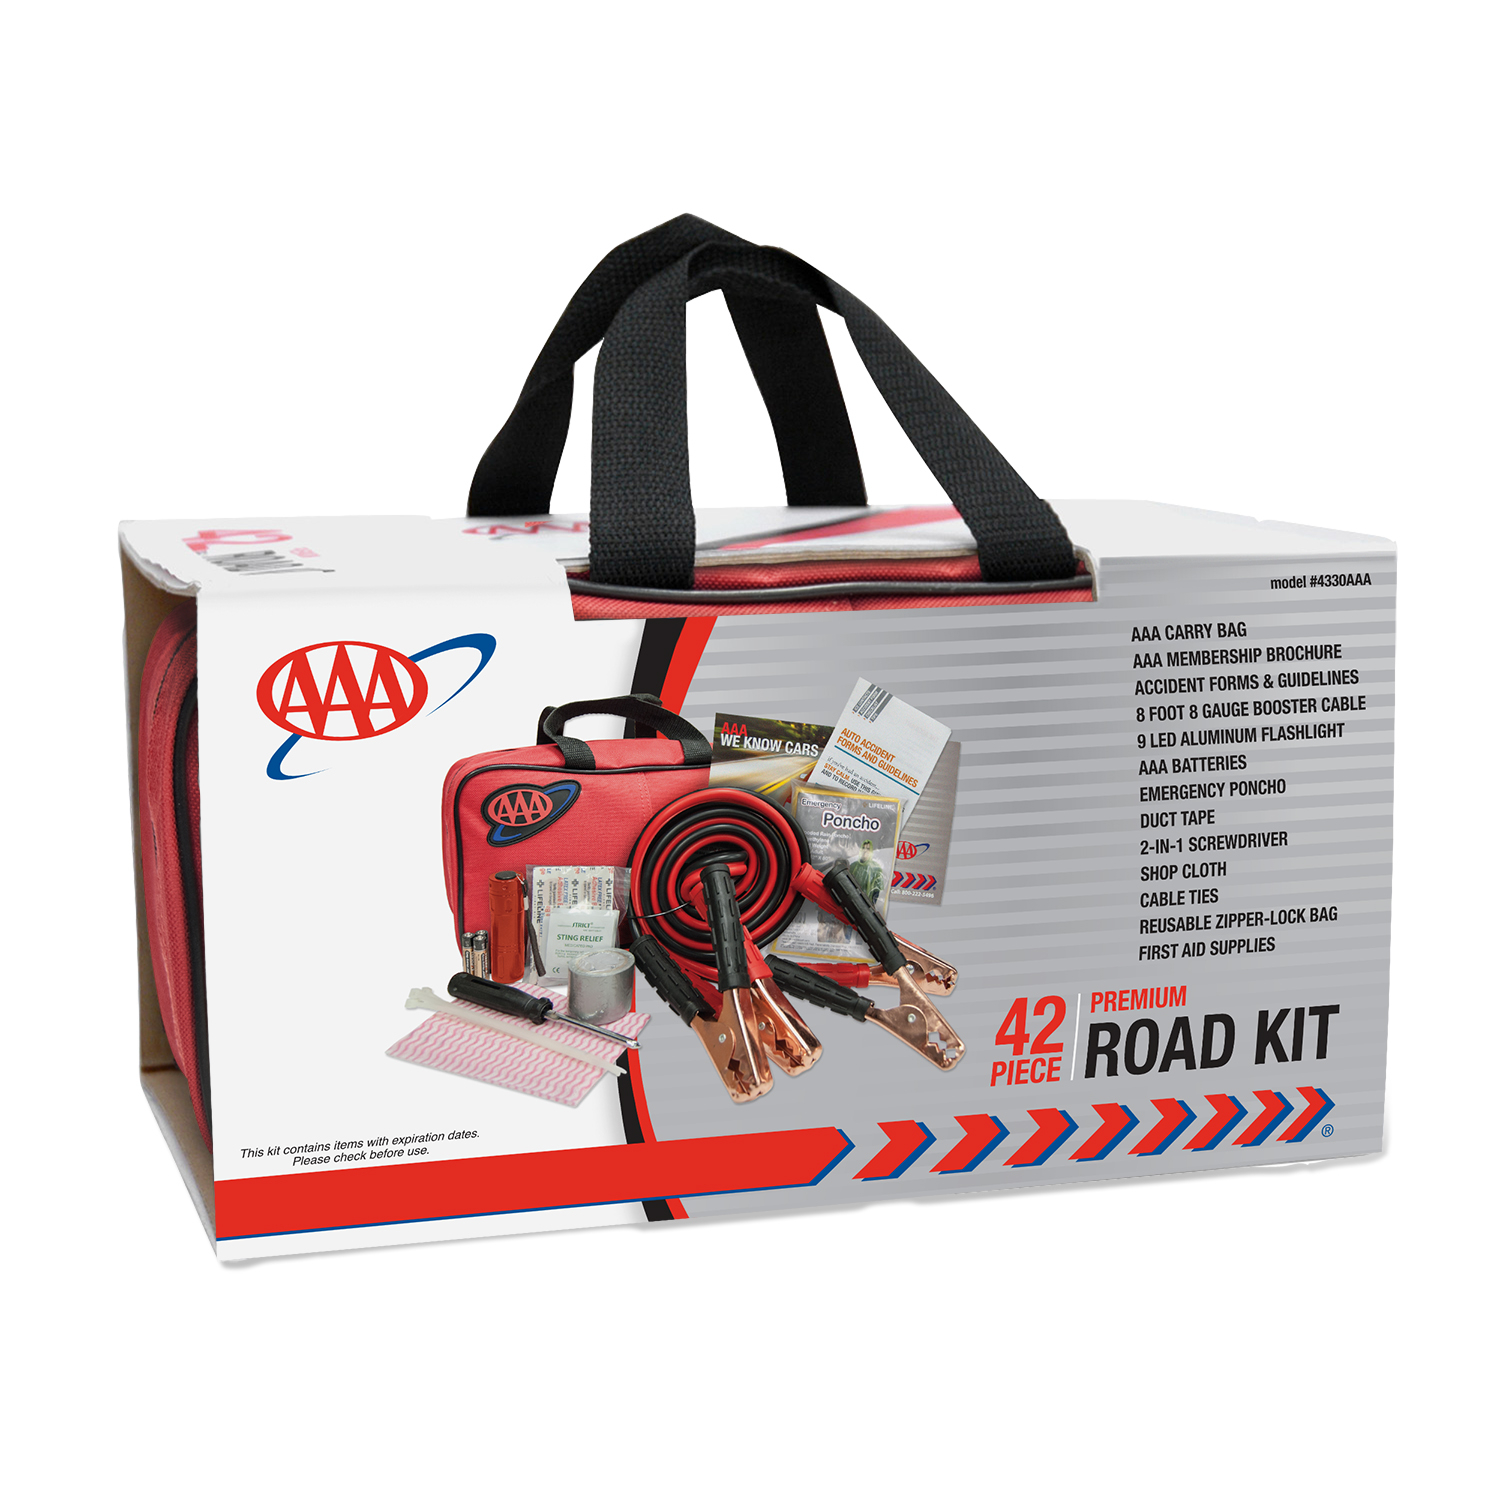 AAA Road Kit by Swift First Aid